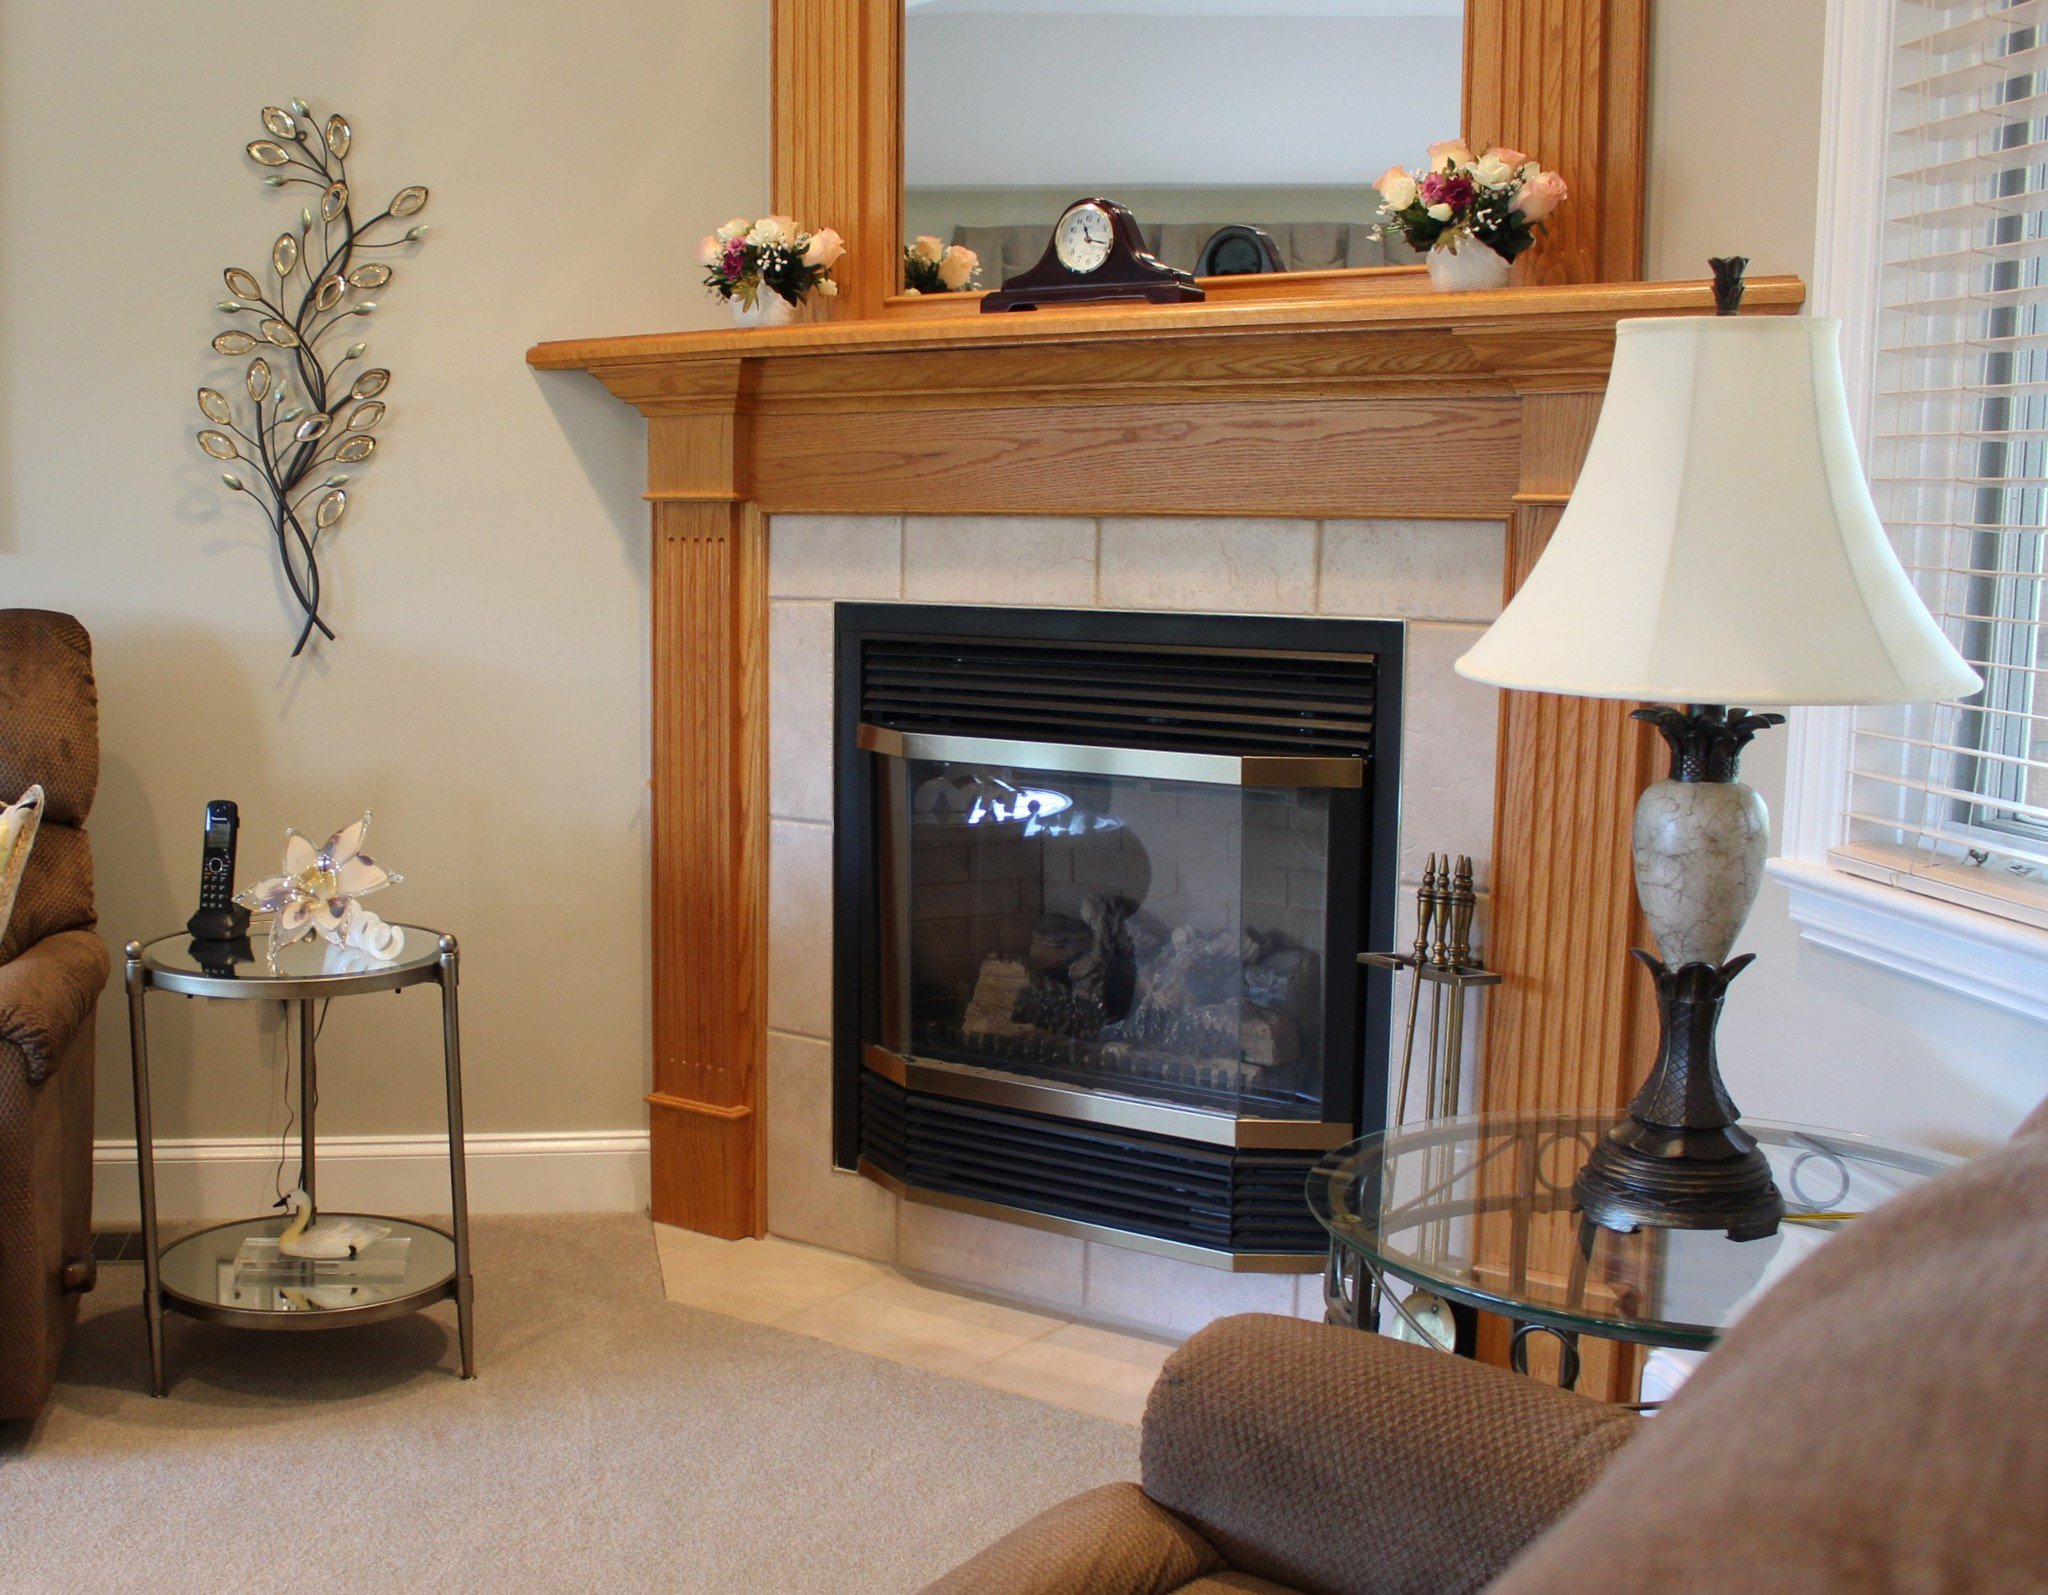 Photo 11: Photos: 159 Nawautin Drive in Grafton: Residential Detached for sale : MLS®# 40012652